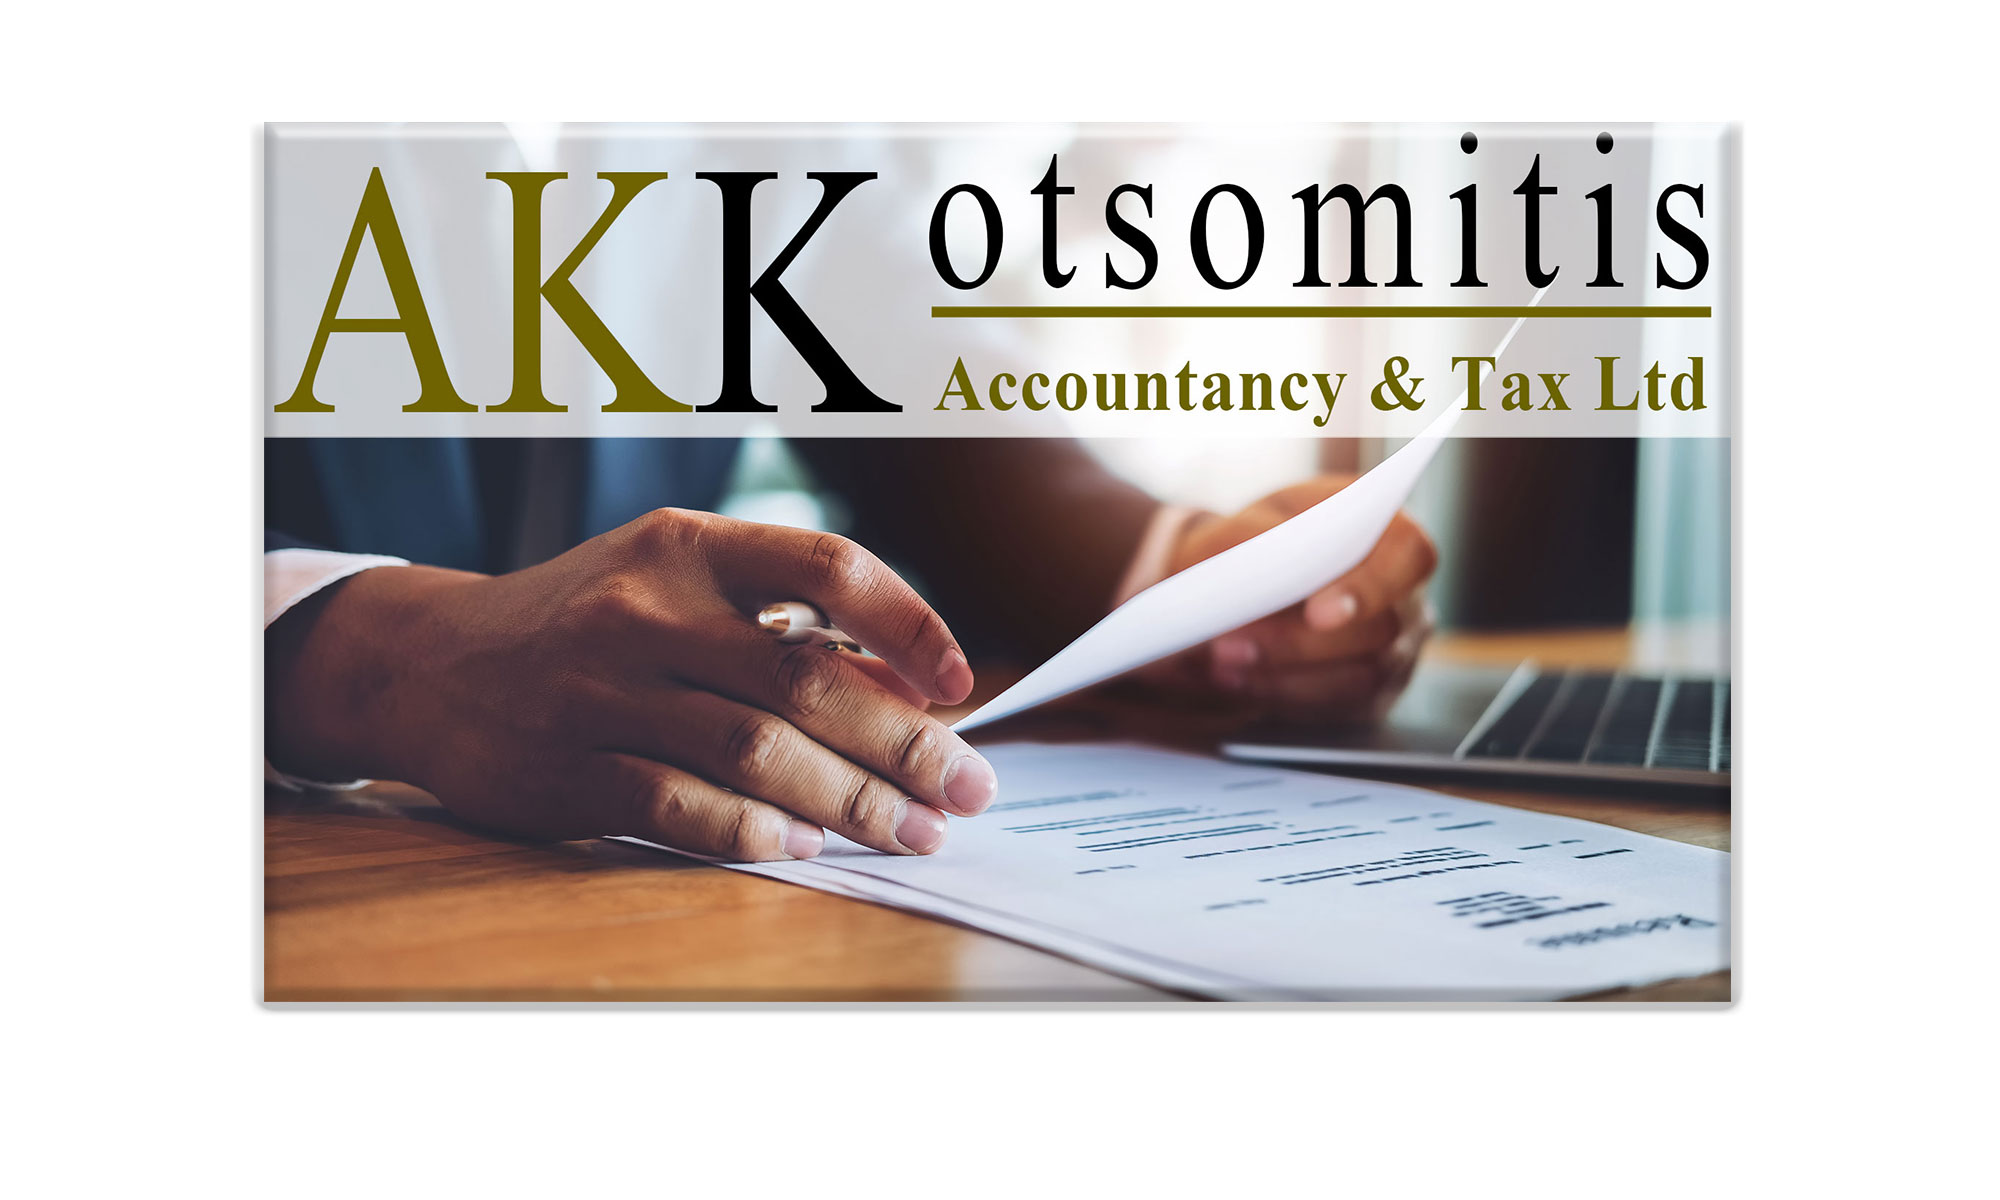 AK Kotsomitis Accountancy and Tax Ltd